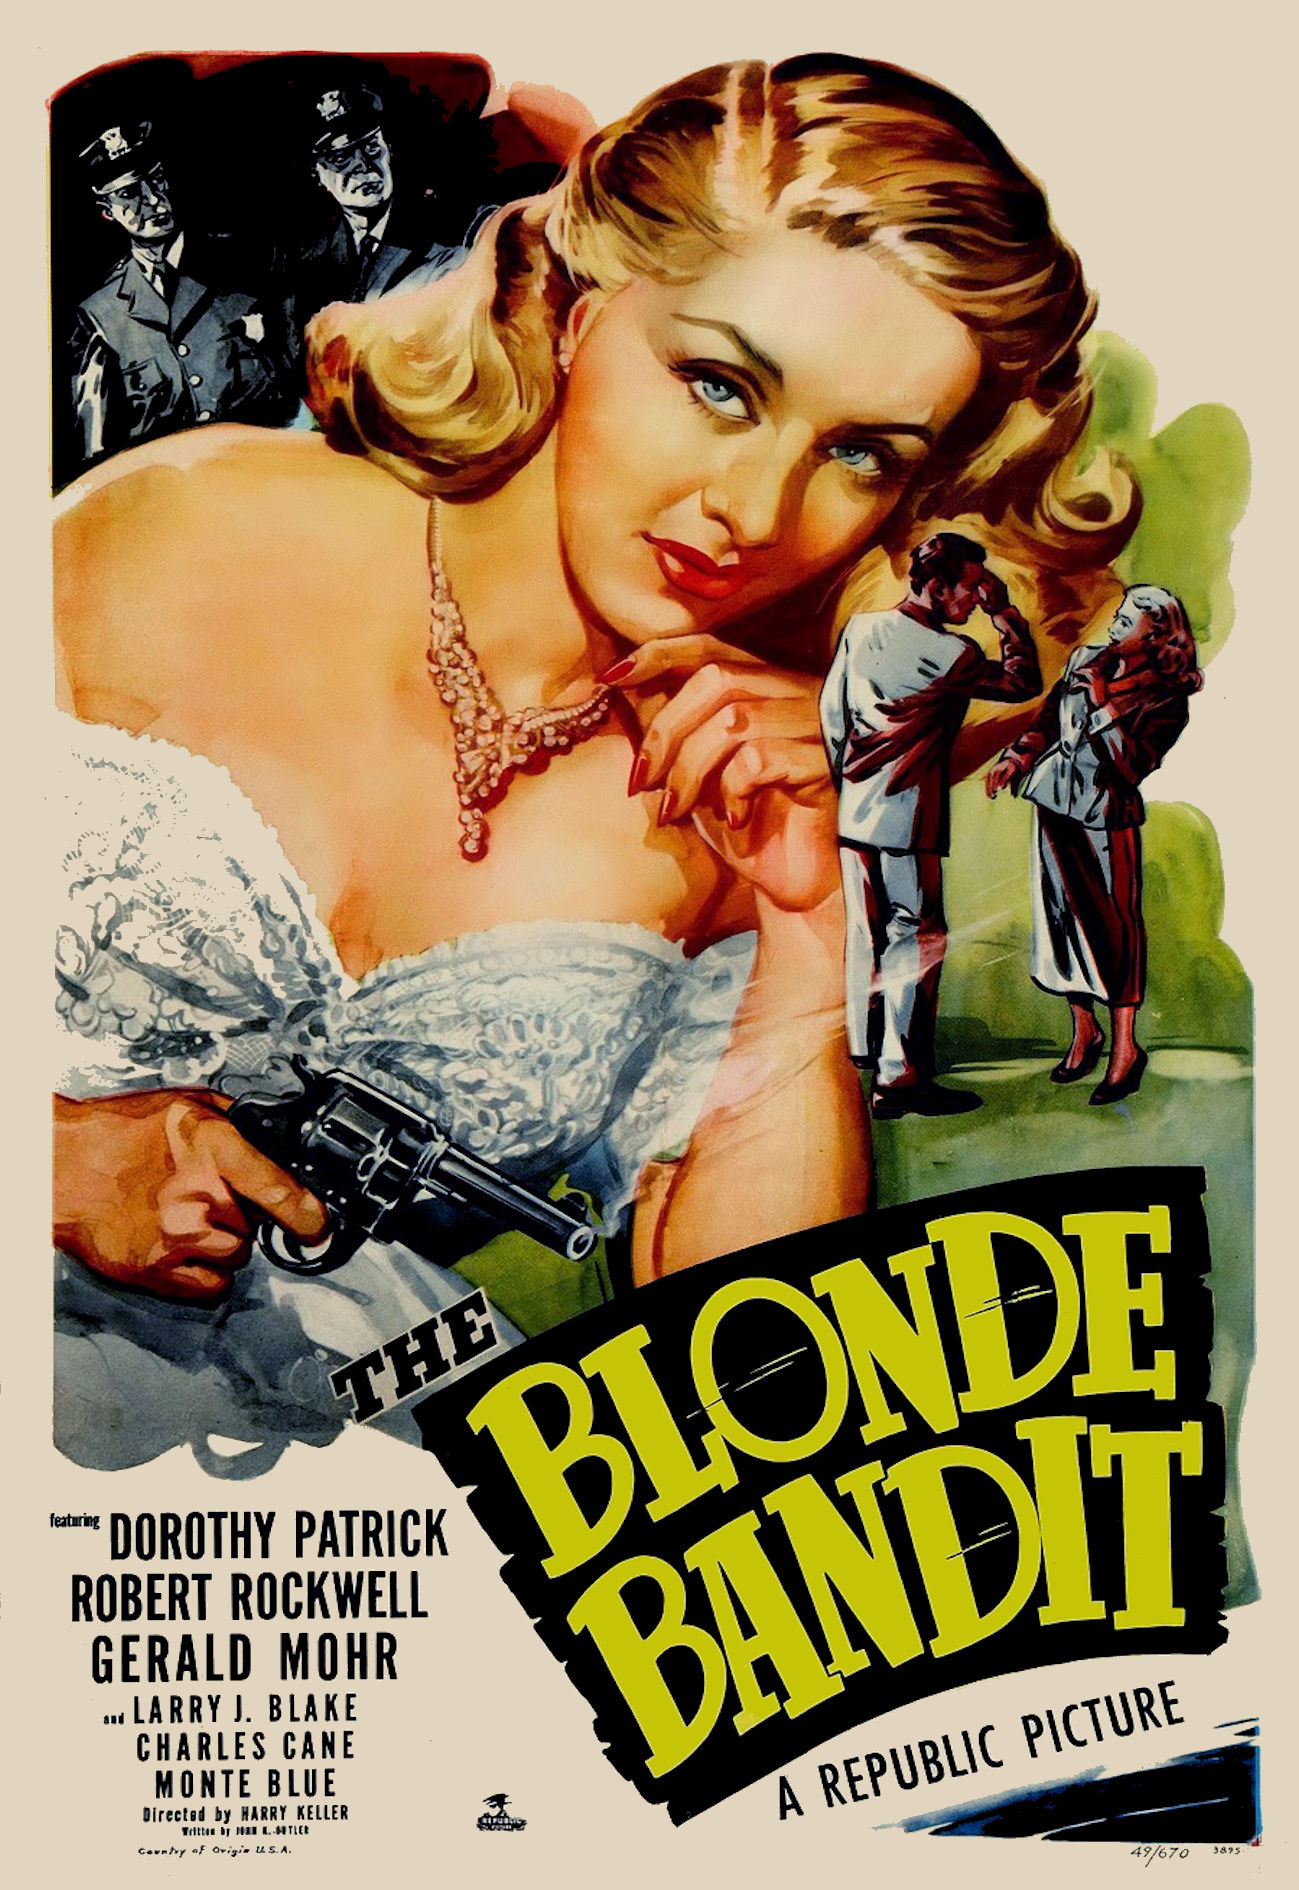 Dorothy Patrick in The Blonde Bandit (1950)